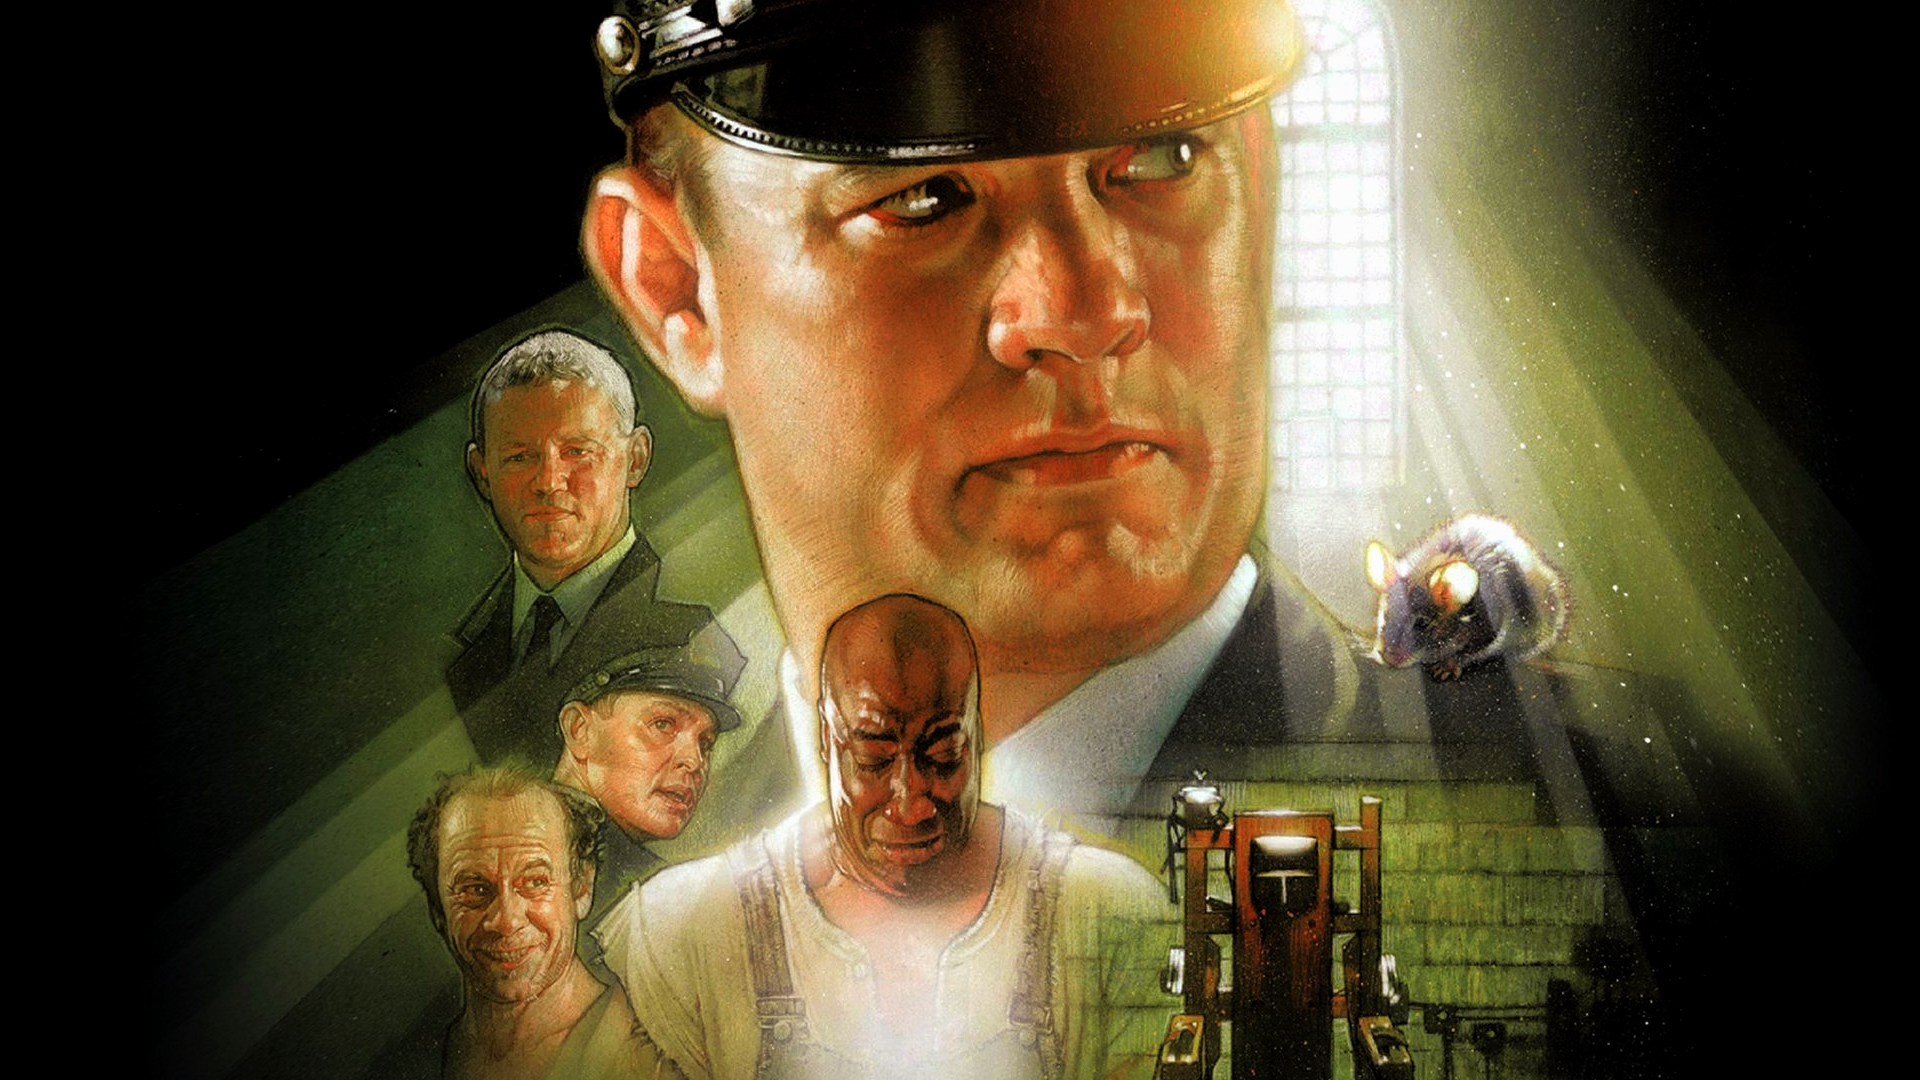 Photograph Movie Pinterest: The Green Mile HD Wallpaper